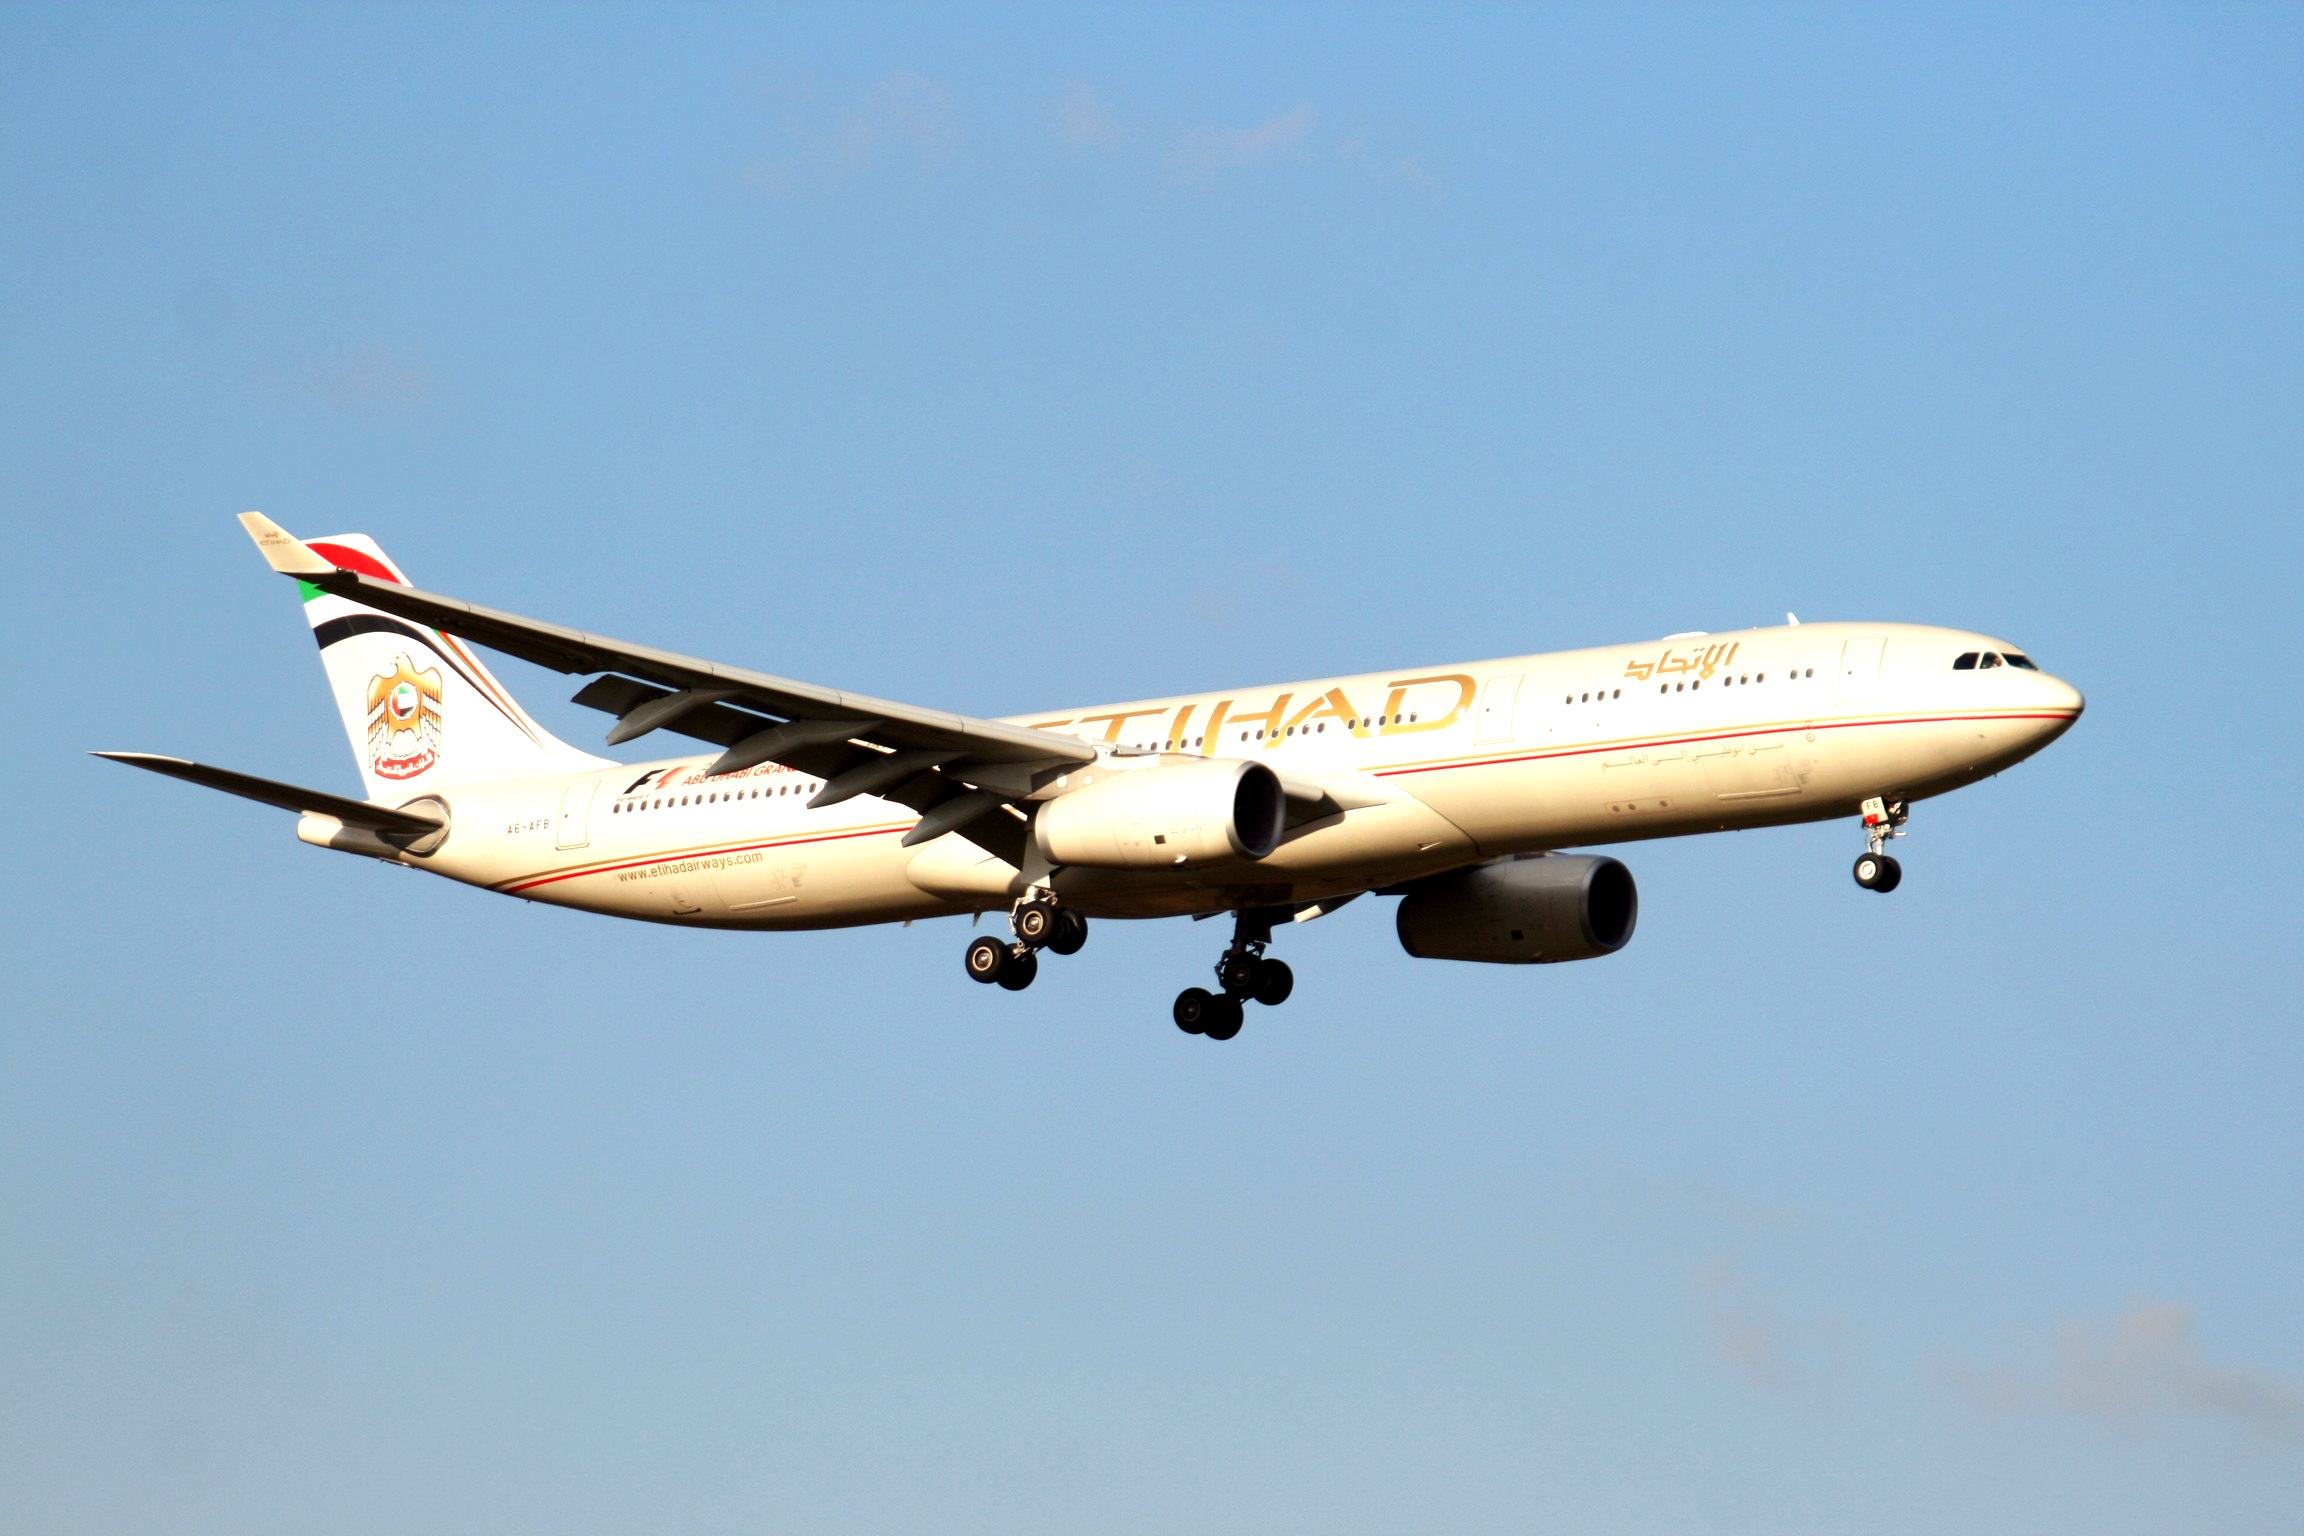 Etihad TOP 10 airlines in the world